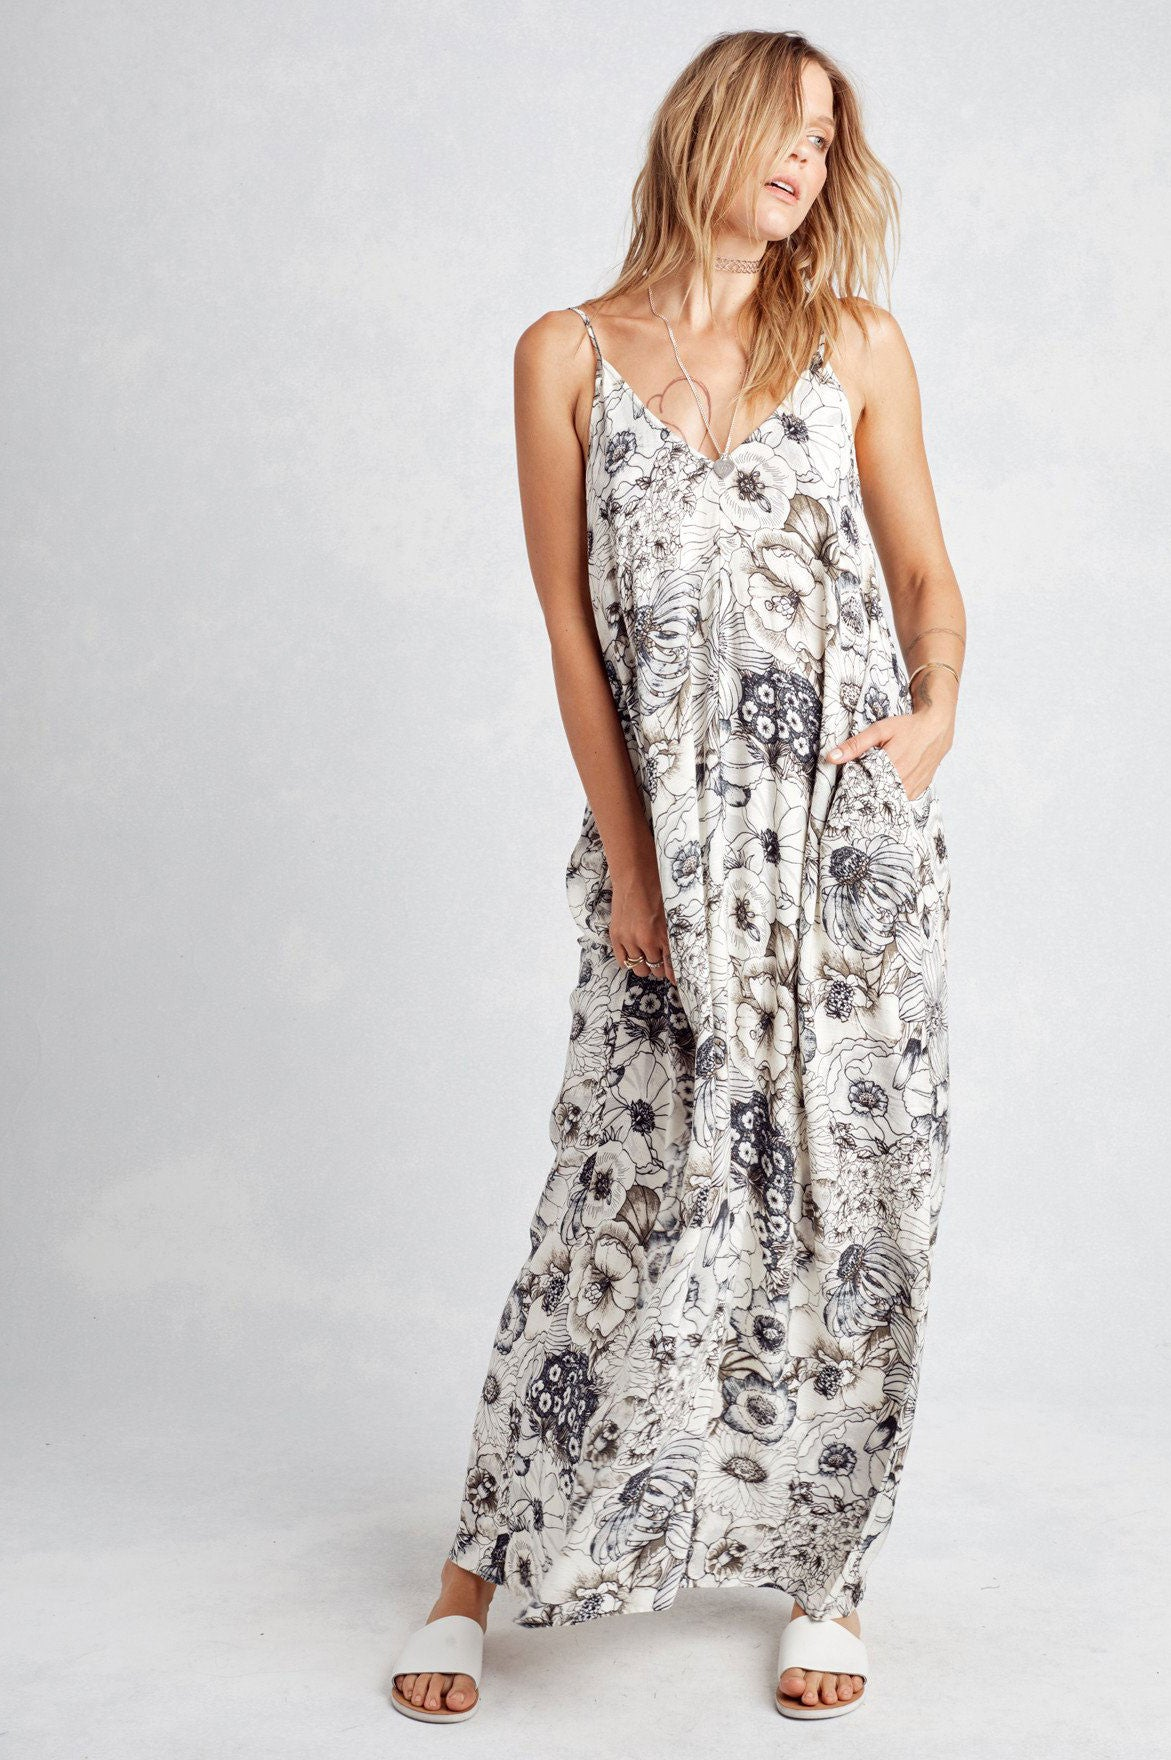 Women's casual vacation maxi dress with black and white floral sketch print and pockets.